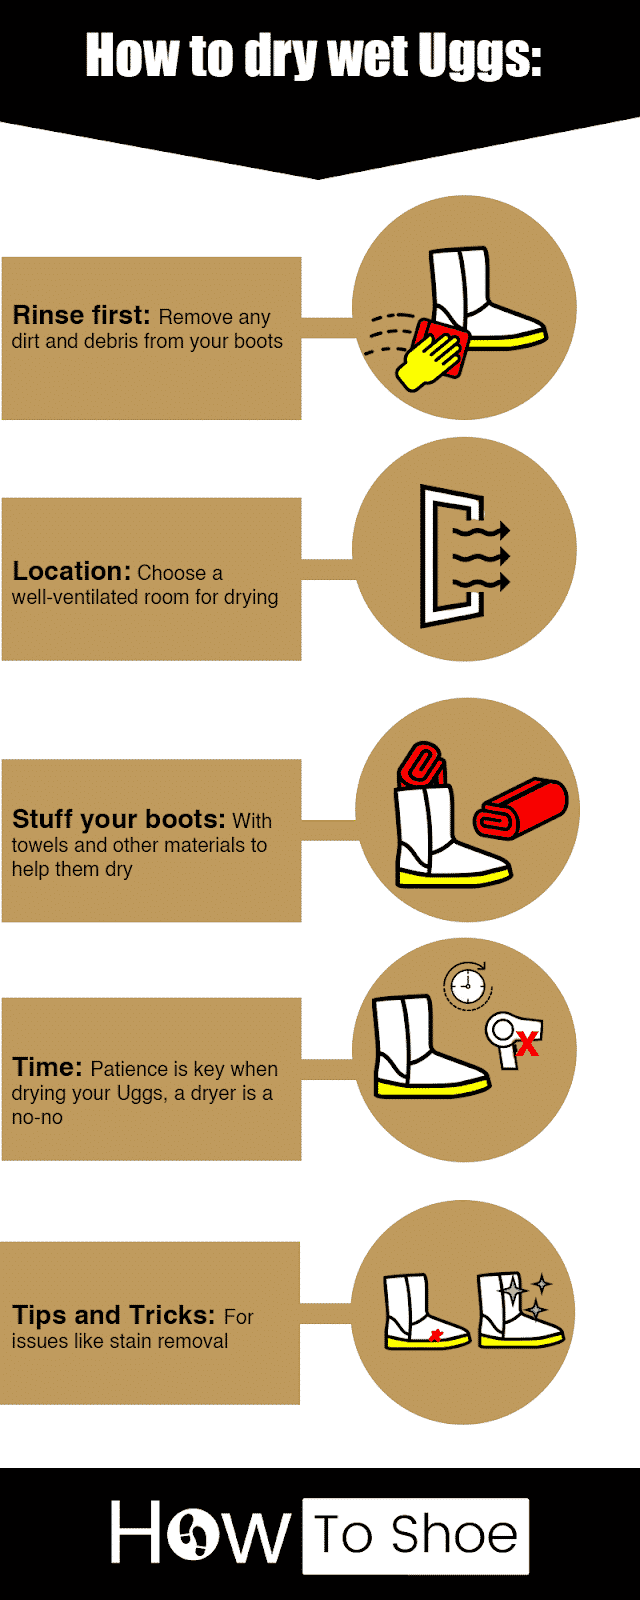 How To Dry Wet Uggs infographic